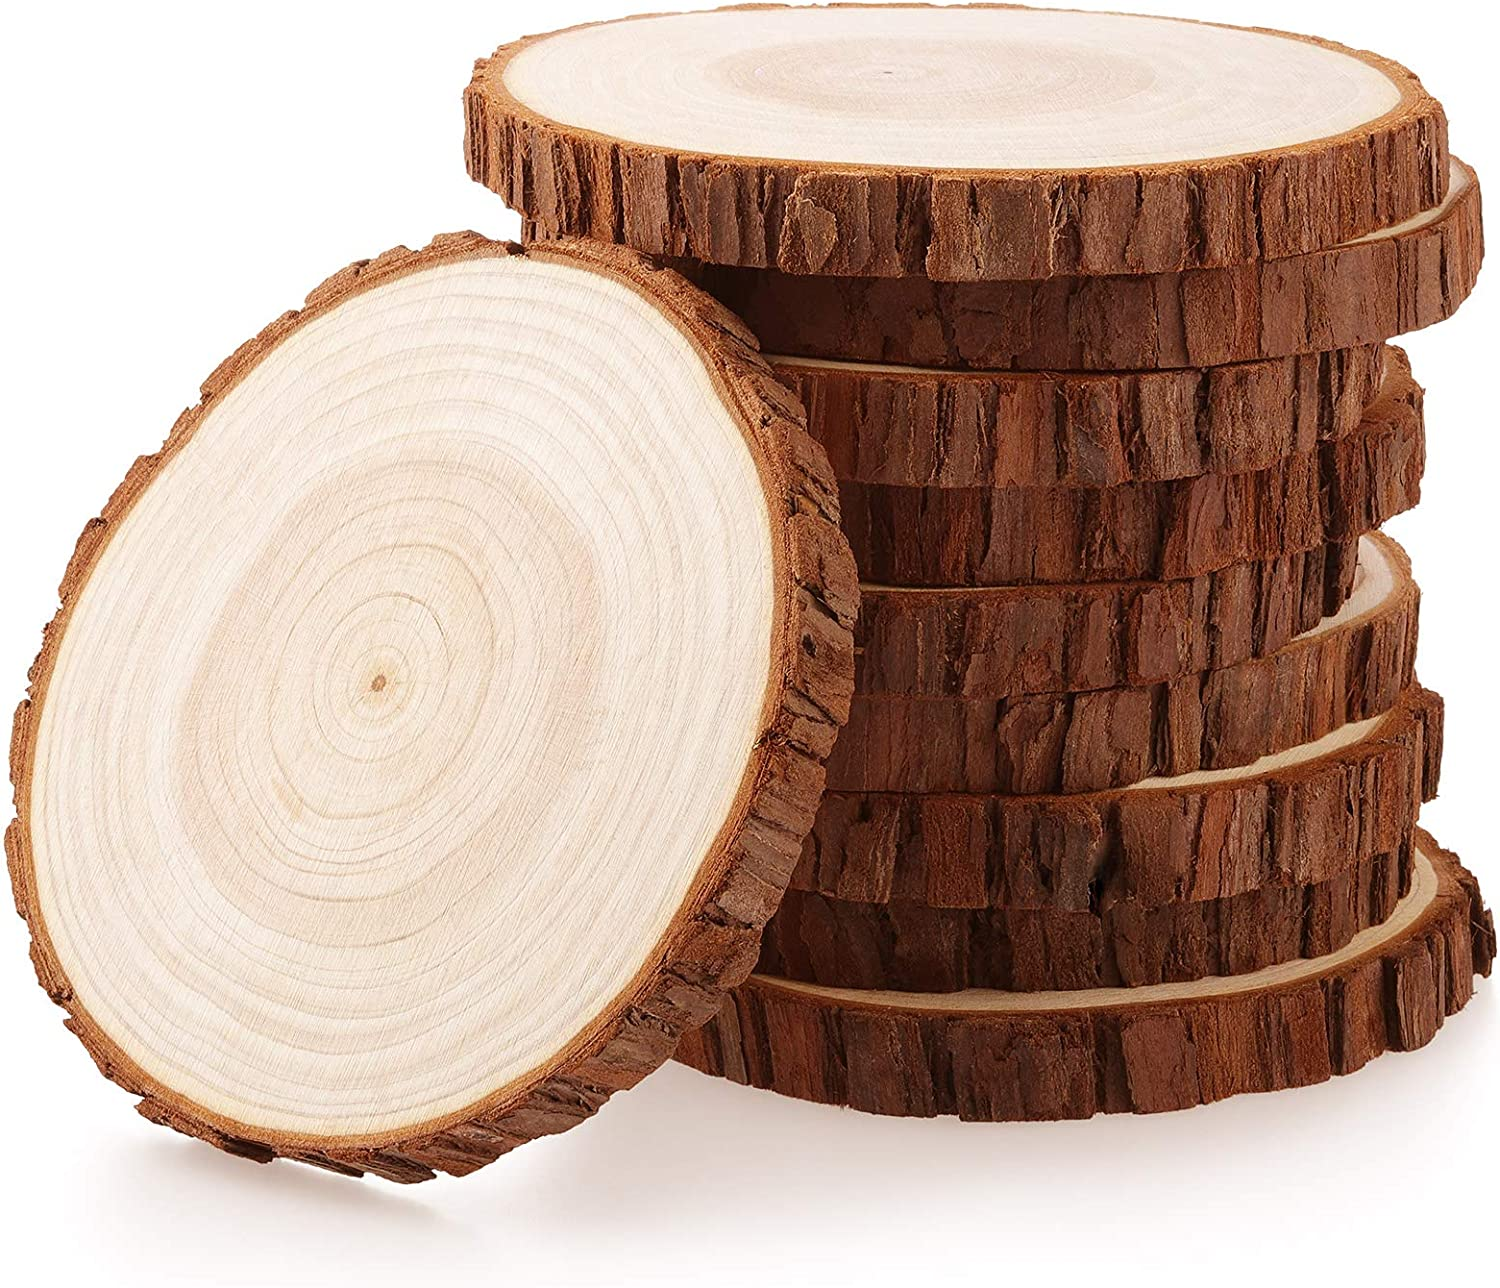 Fuyit Wood Slices 10 Pcs 4.7-5.1 Inches Unfinished Natural Tree Slice Wooden Circle with Bark Log Discs for DIY Arts and Craft Rustic Wedding Christmas Ornaments